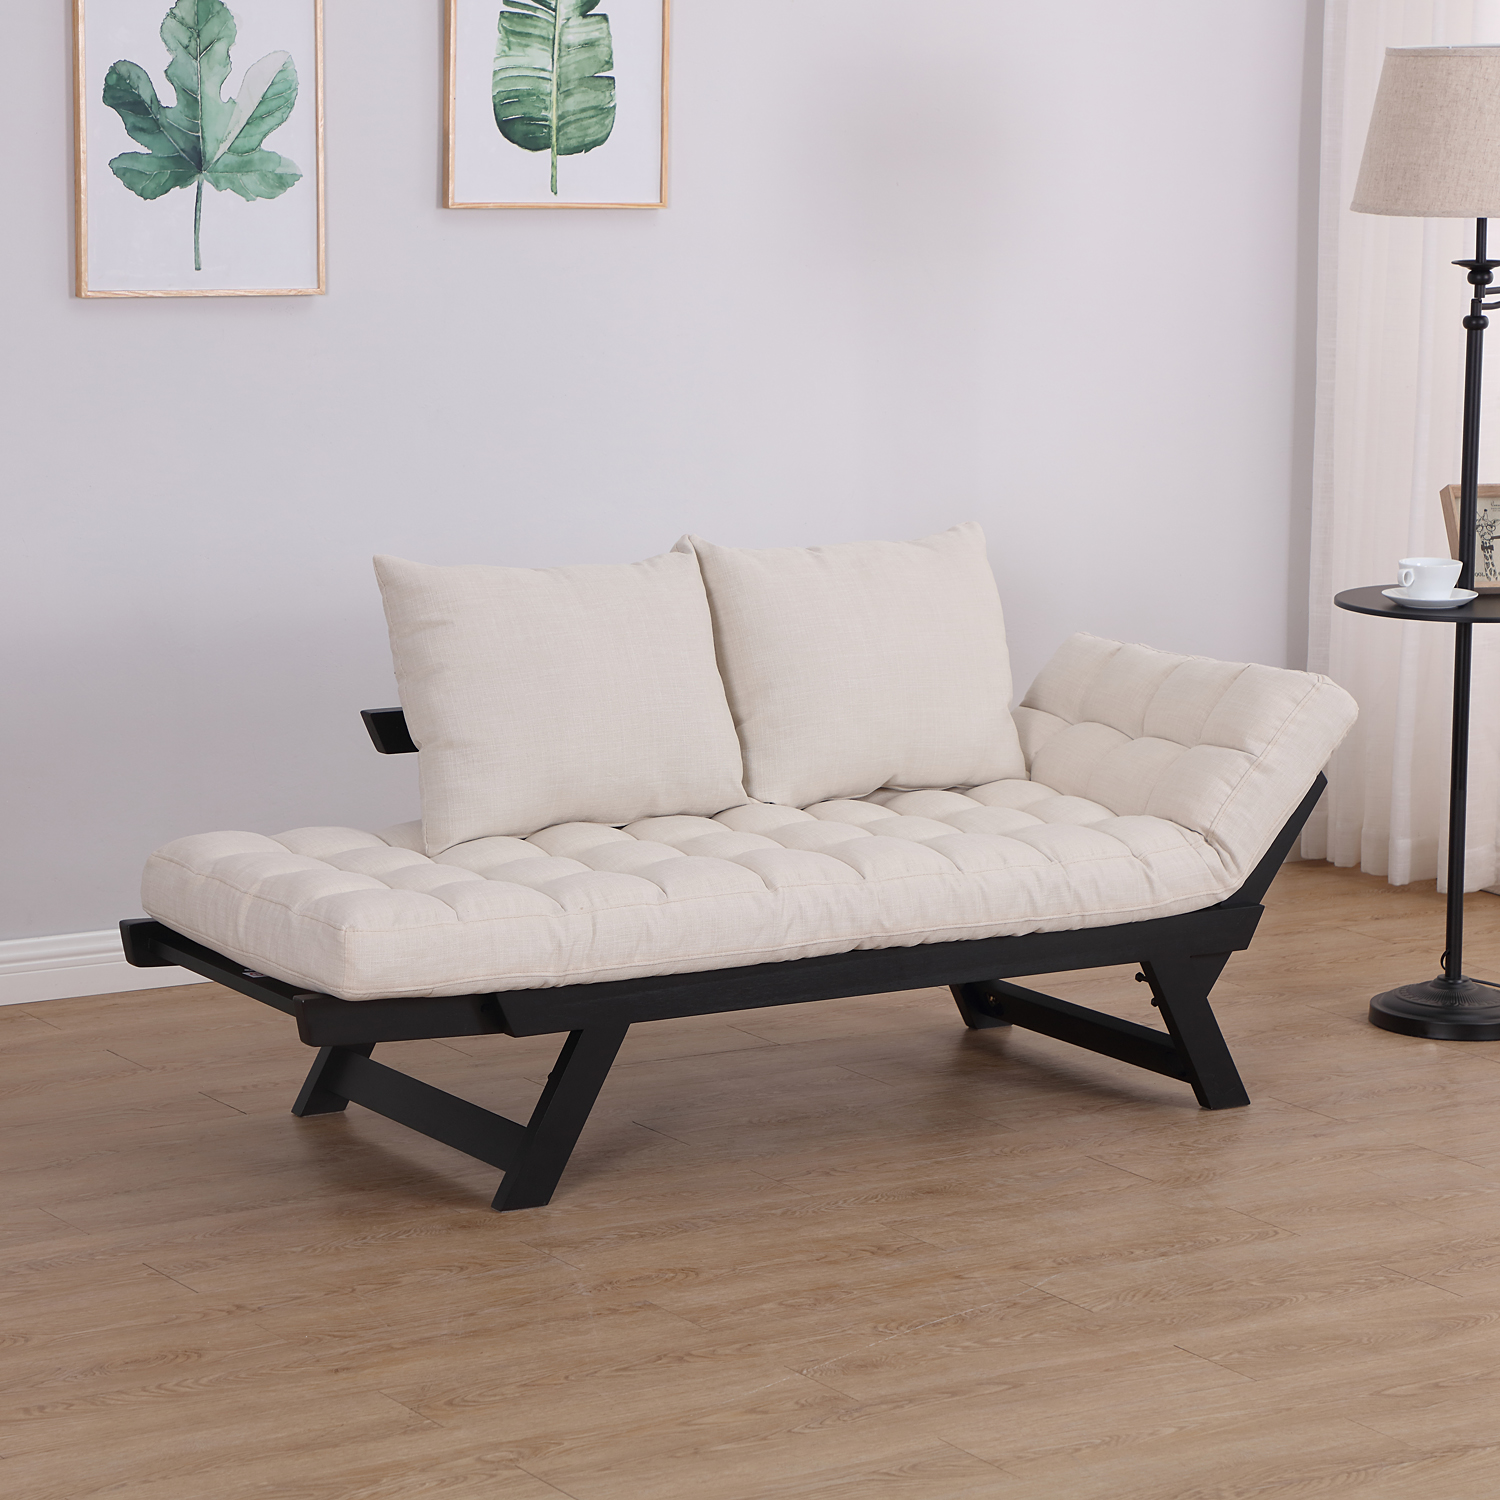 lightweight sofa